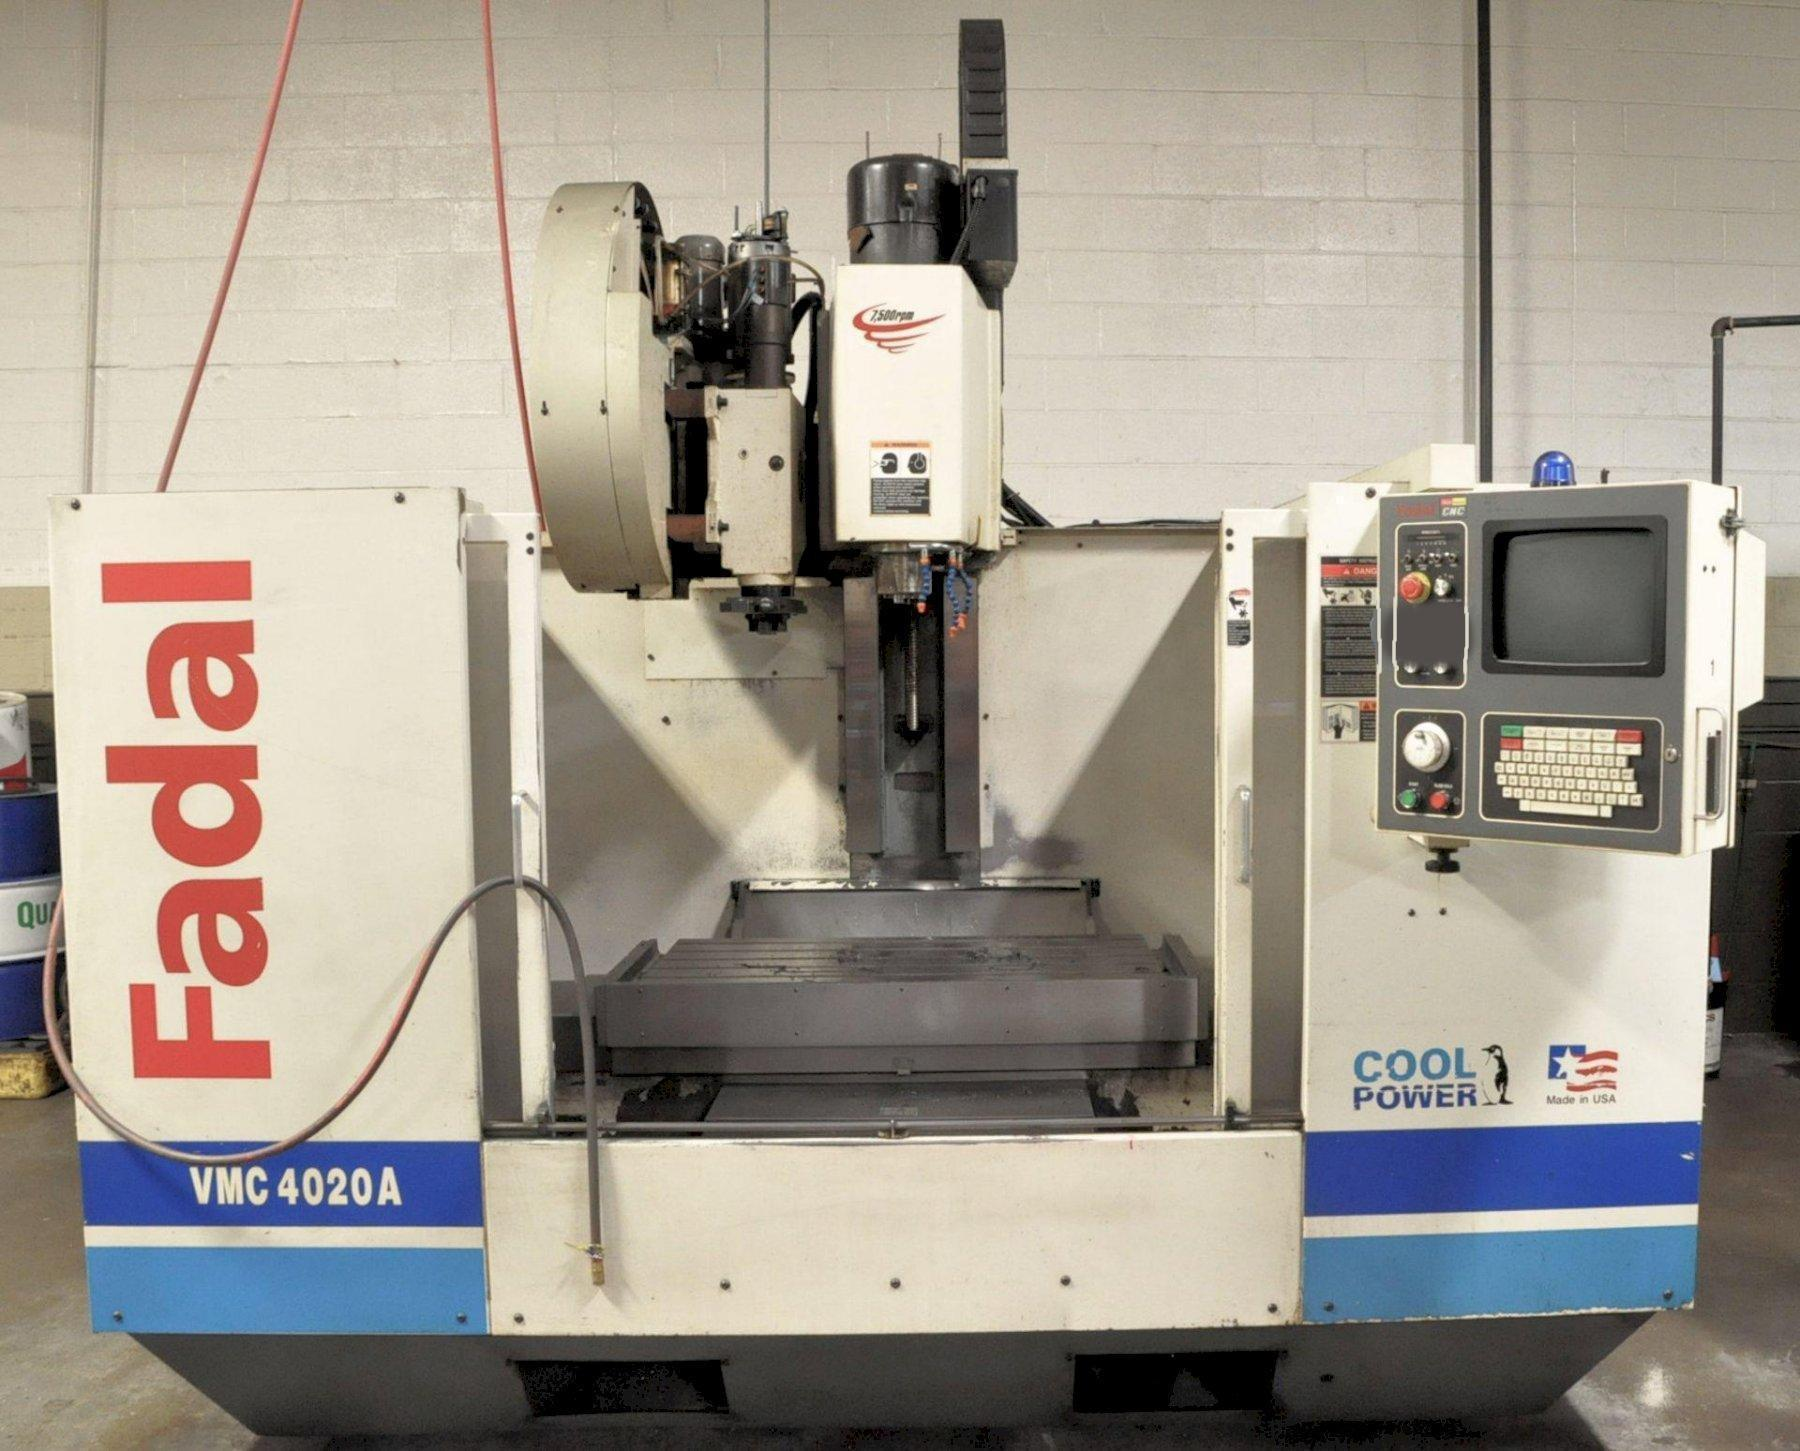 USED FADAL MODEL 4020A CNC VERTICAL MACHINING CENTER, Stock # 10815, Year 2002